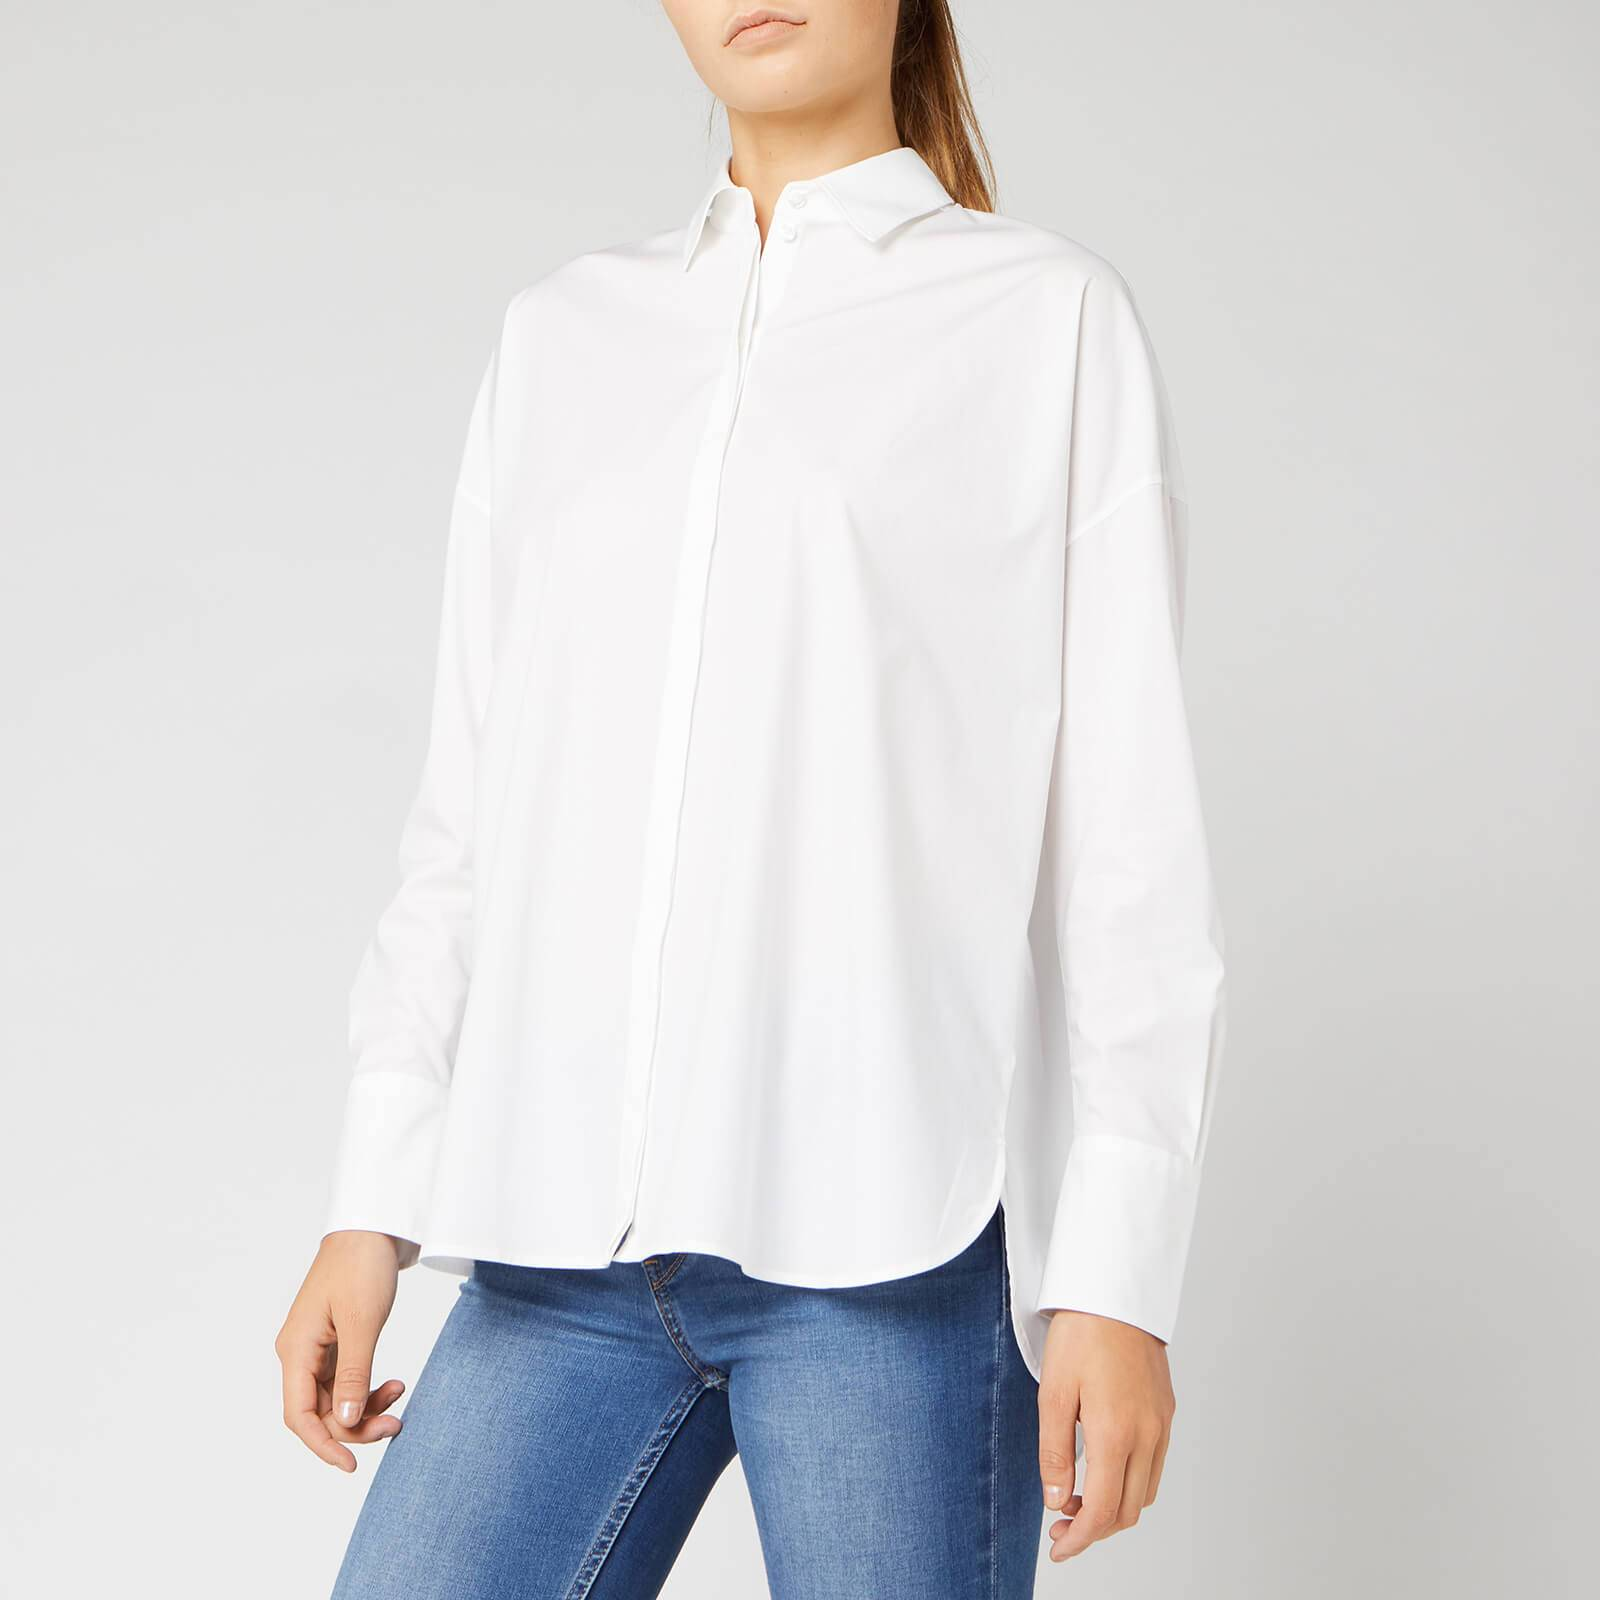 Hugo Boss Women's Elumia Shirt - White - M - White